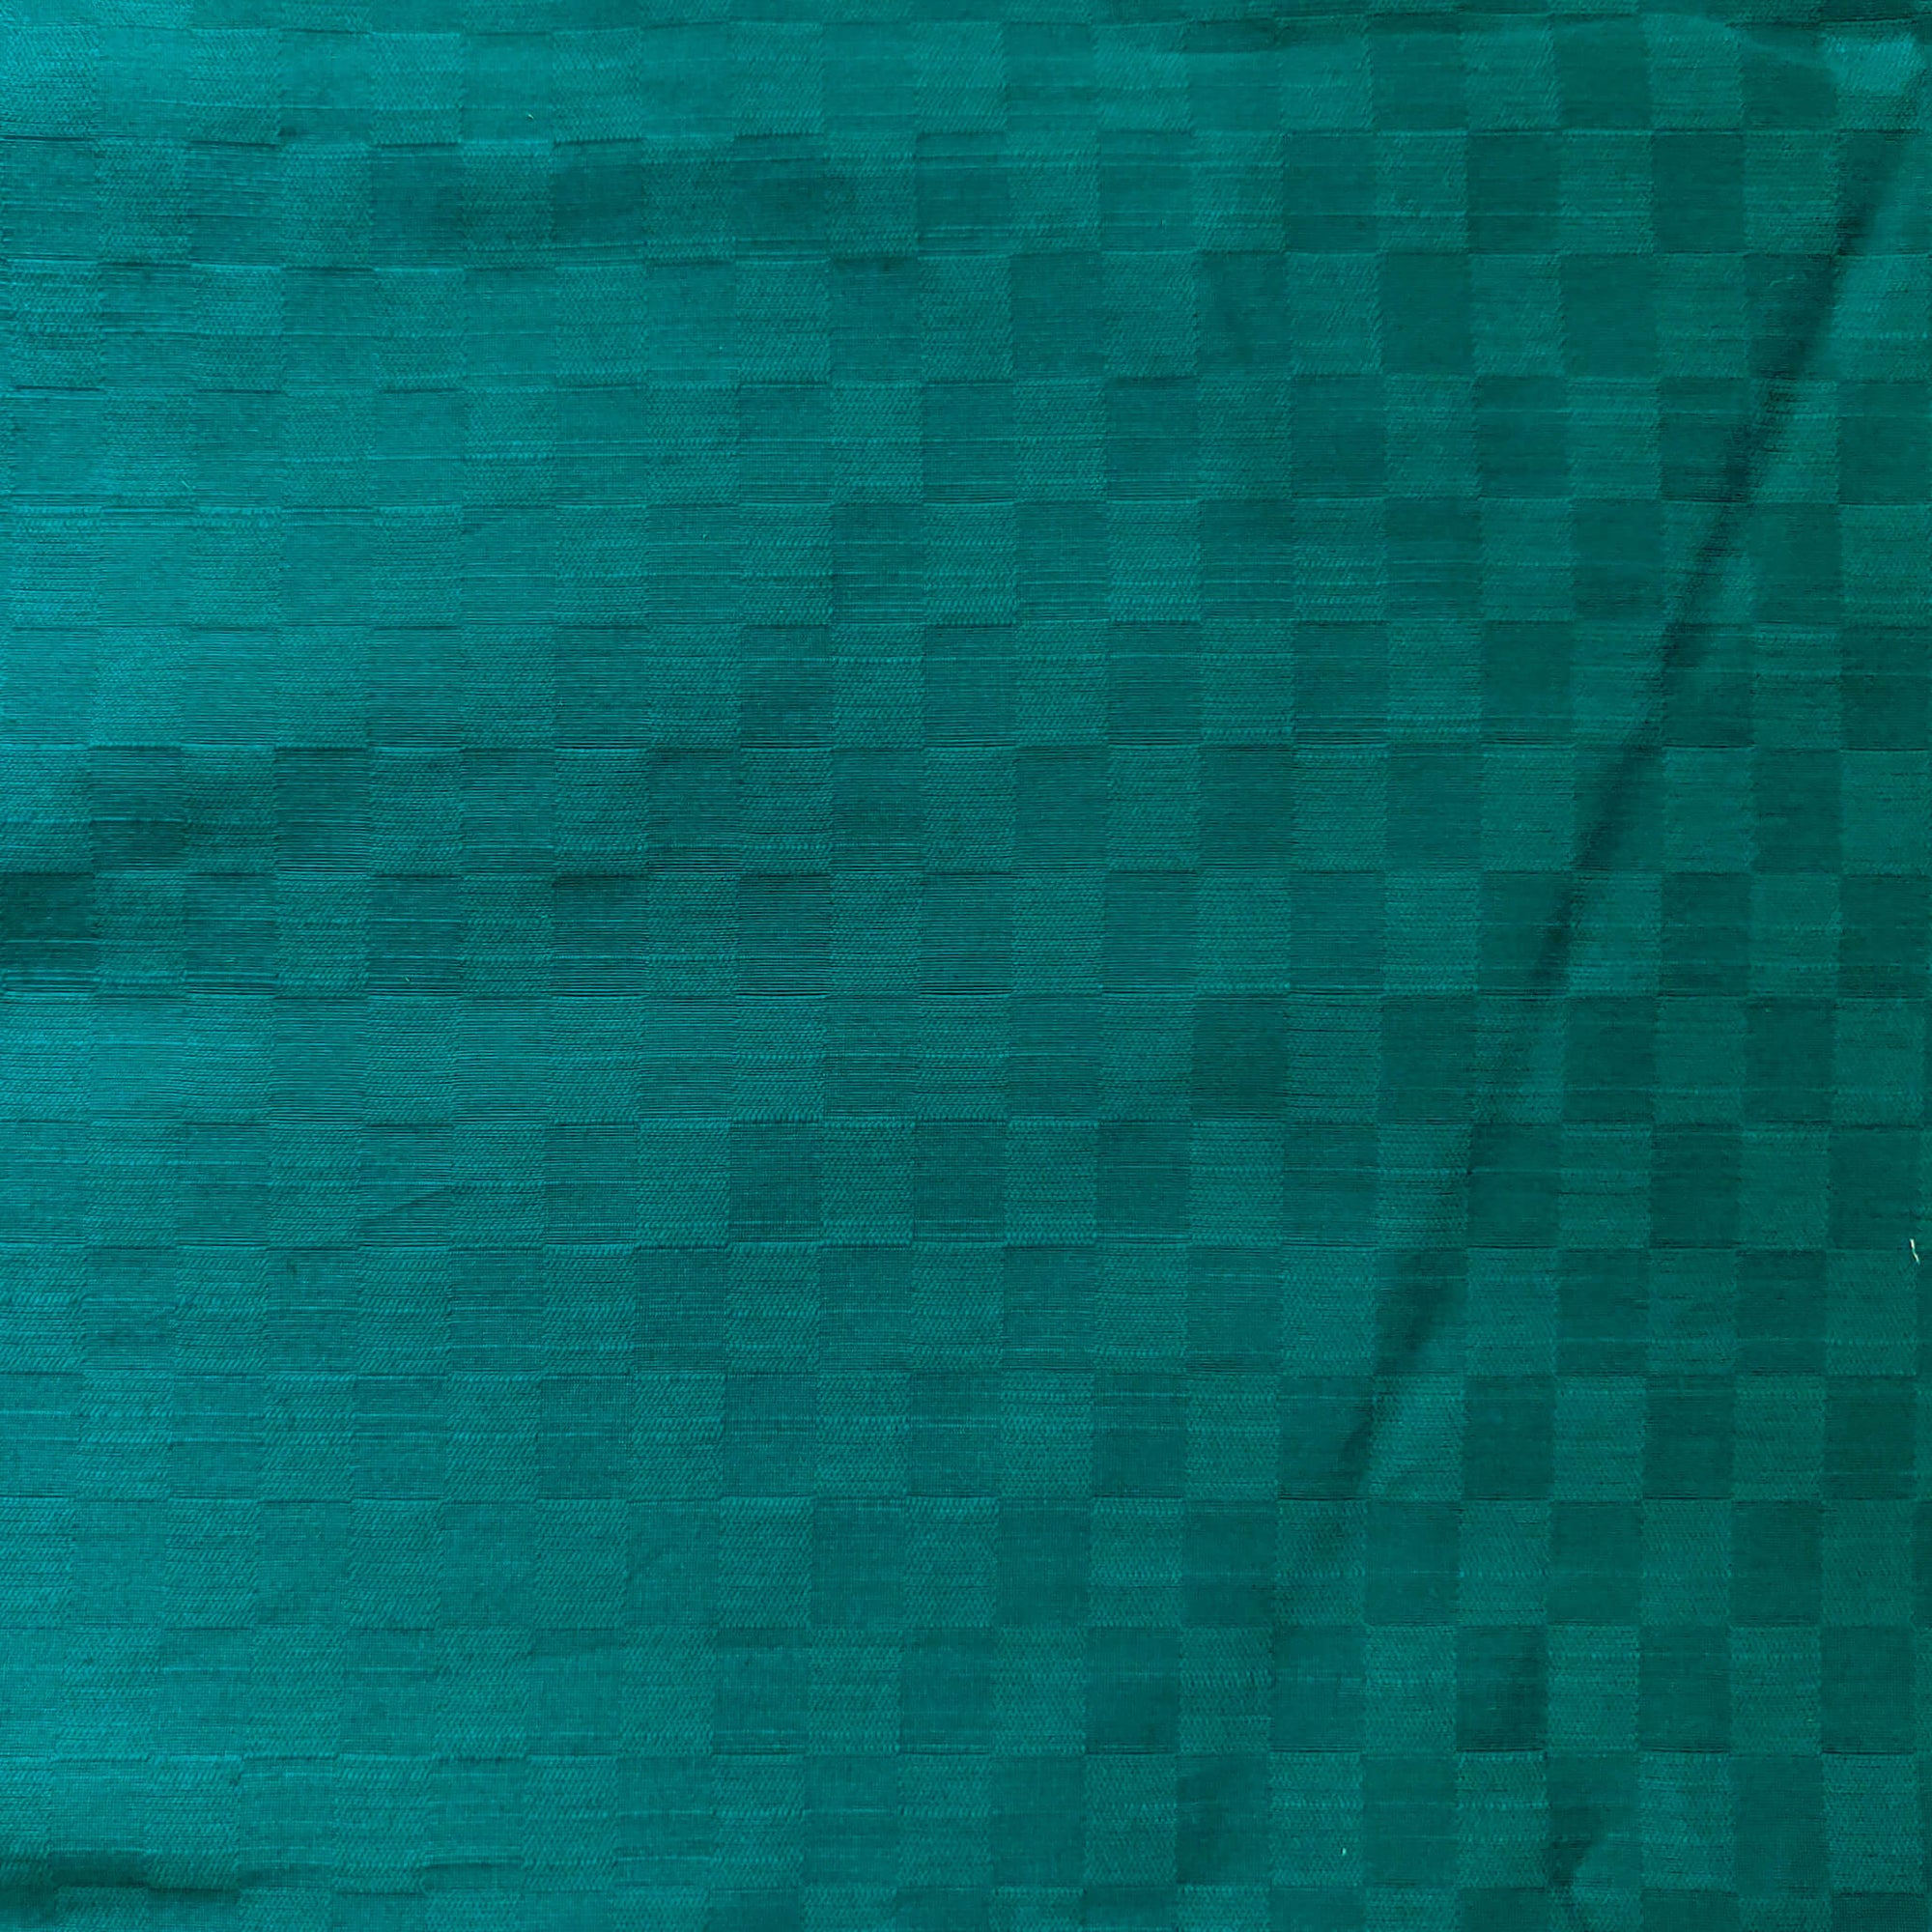 Cotton Silk Teal Interlocked Checks Fabric